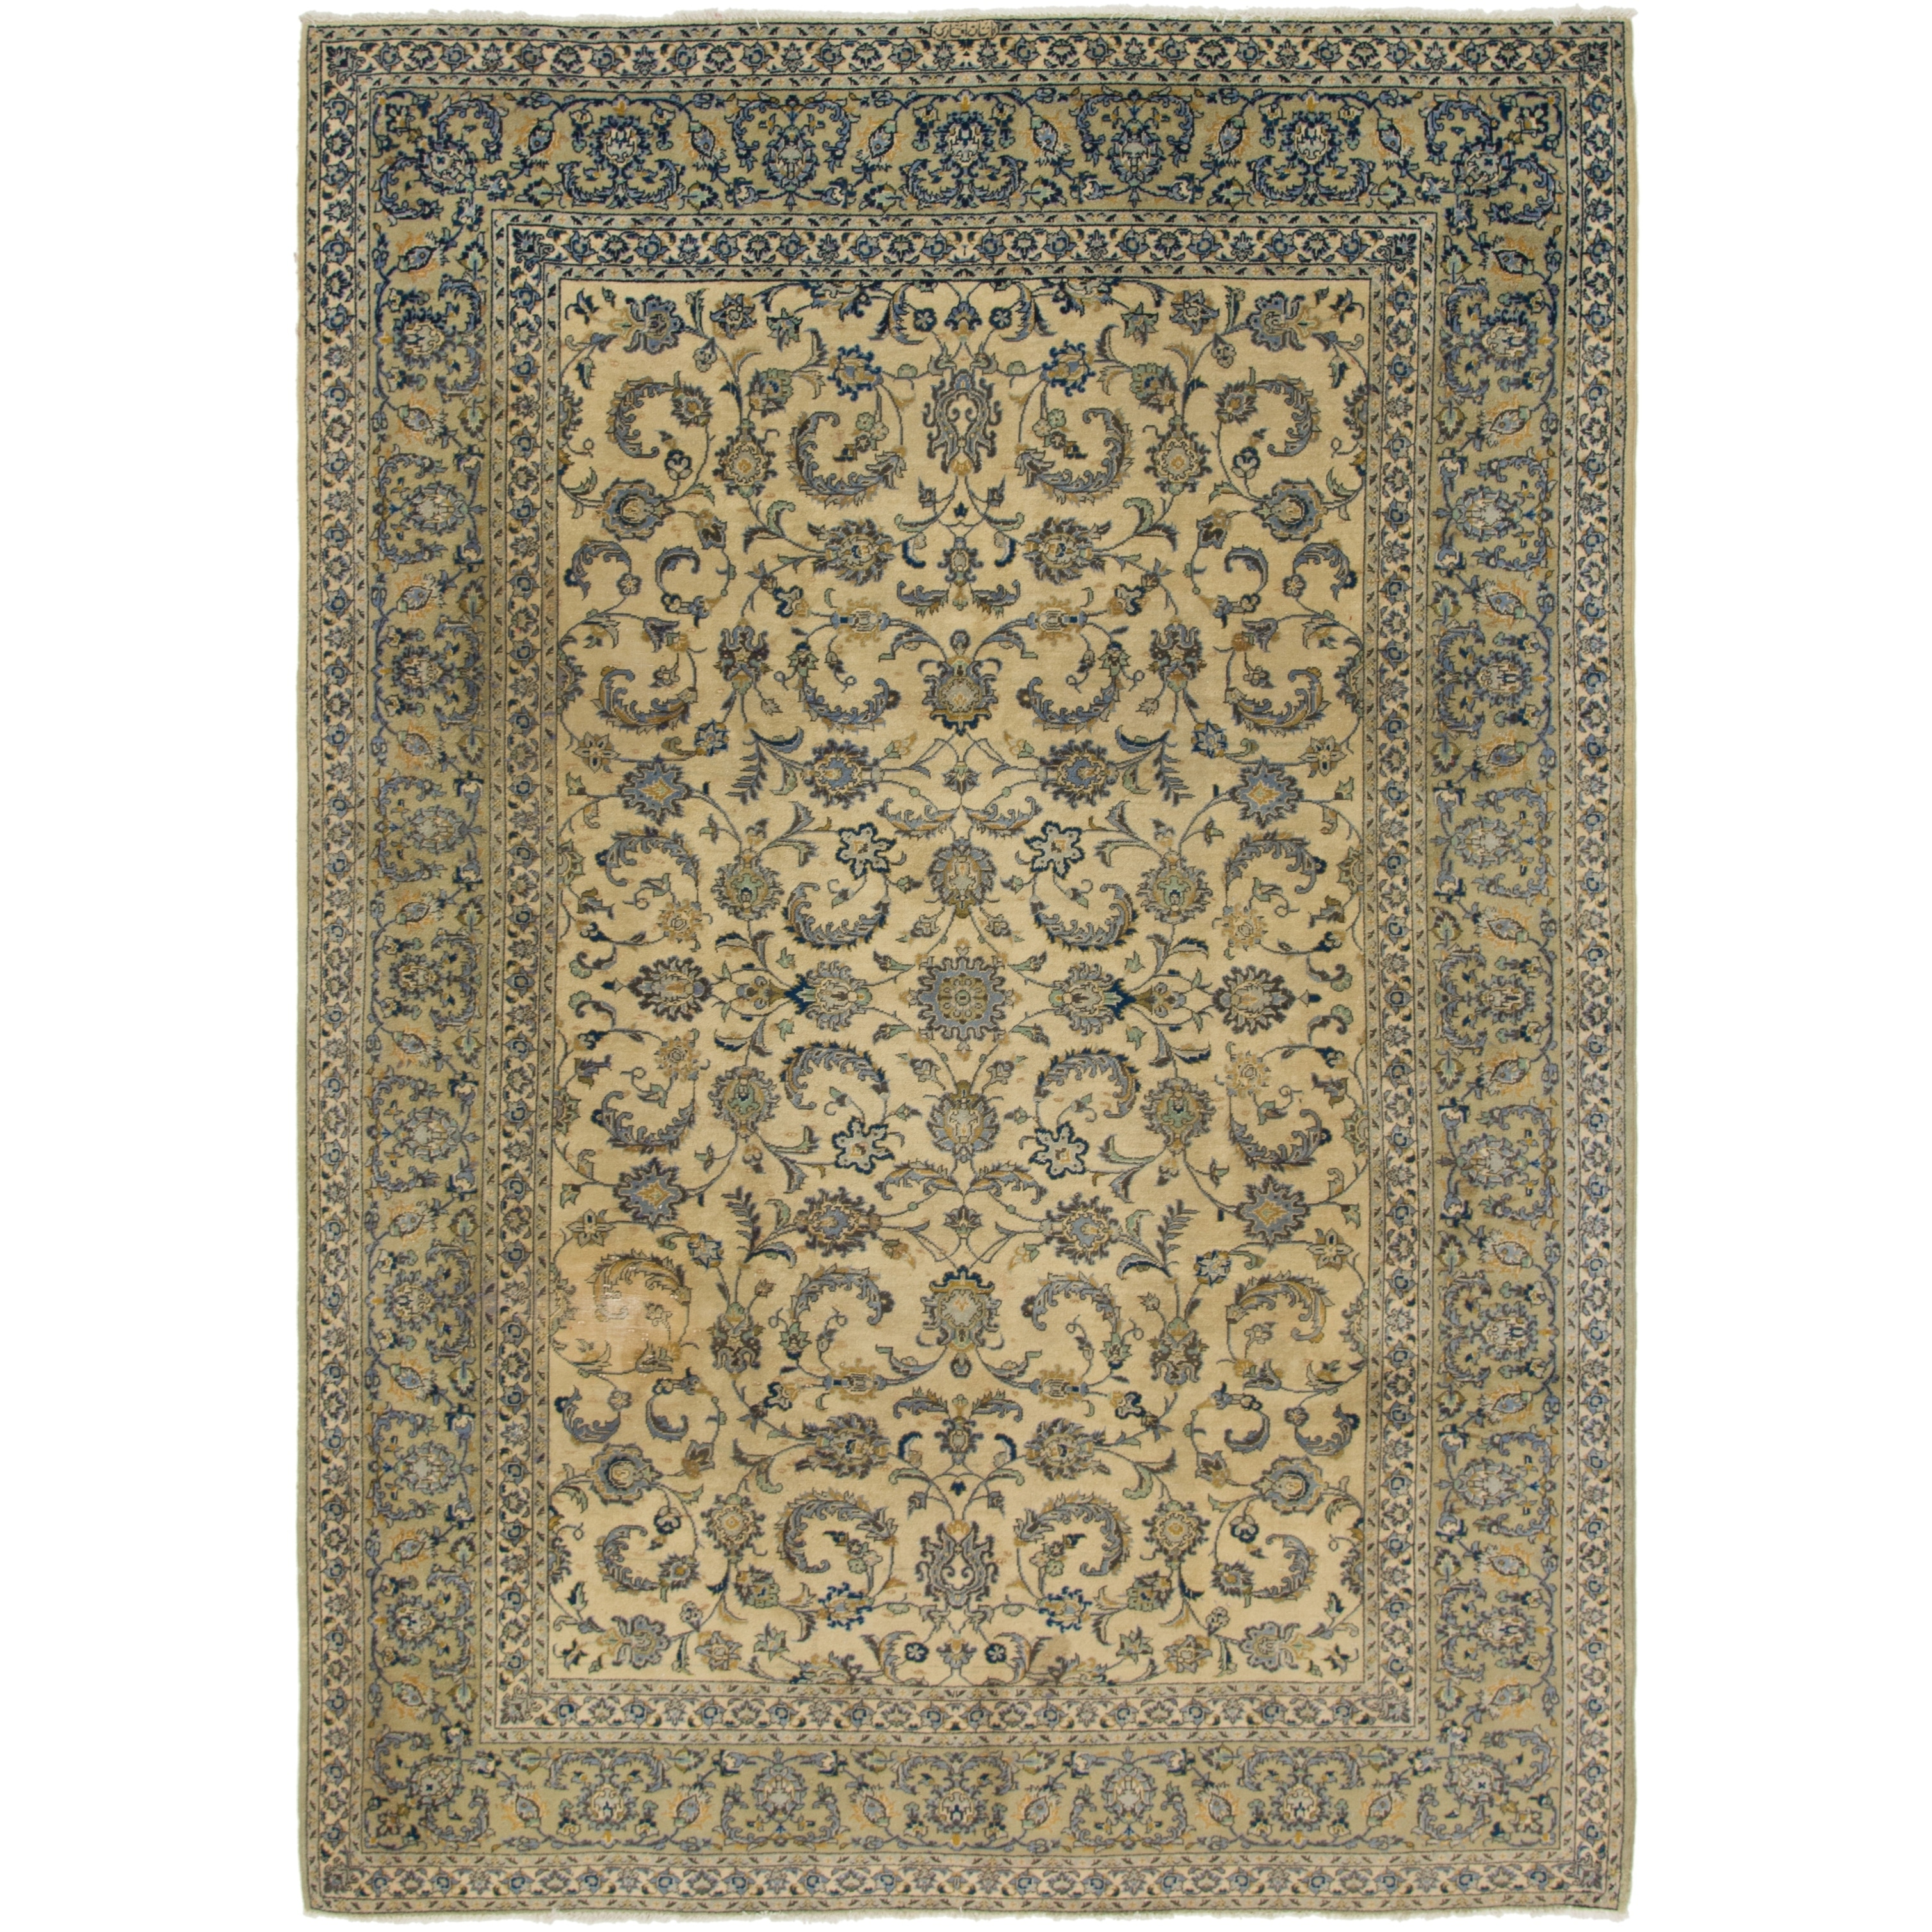 Hand Knotted Kashan Semi Antique Wool Area Rug - 7 6 x 10 8 (Ivory - 7 6 x 10 8)